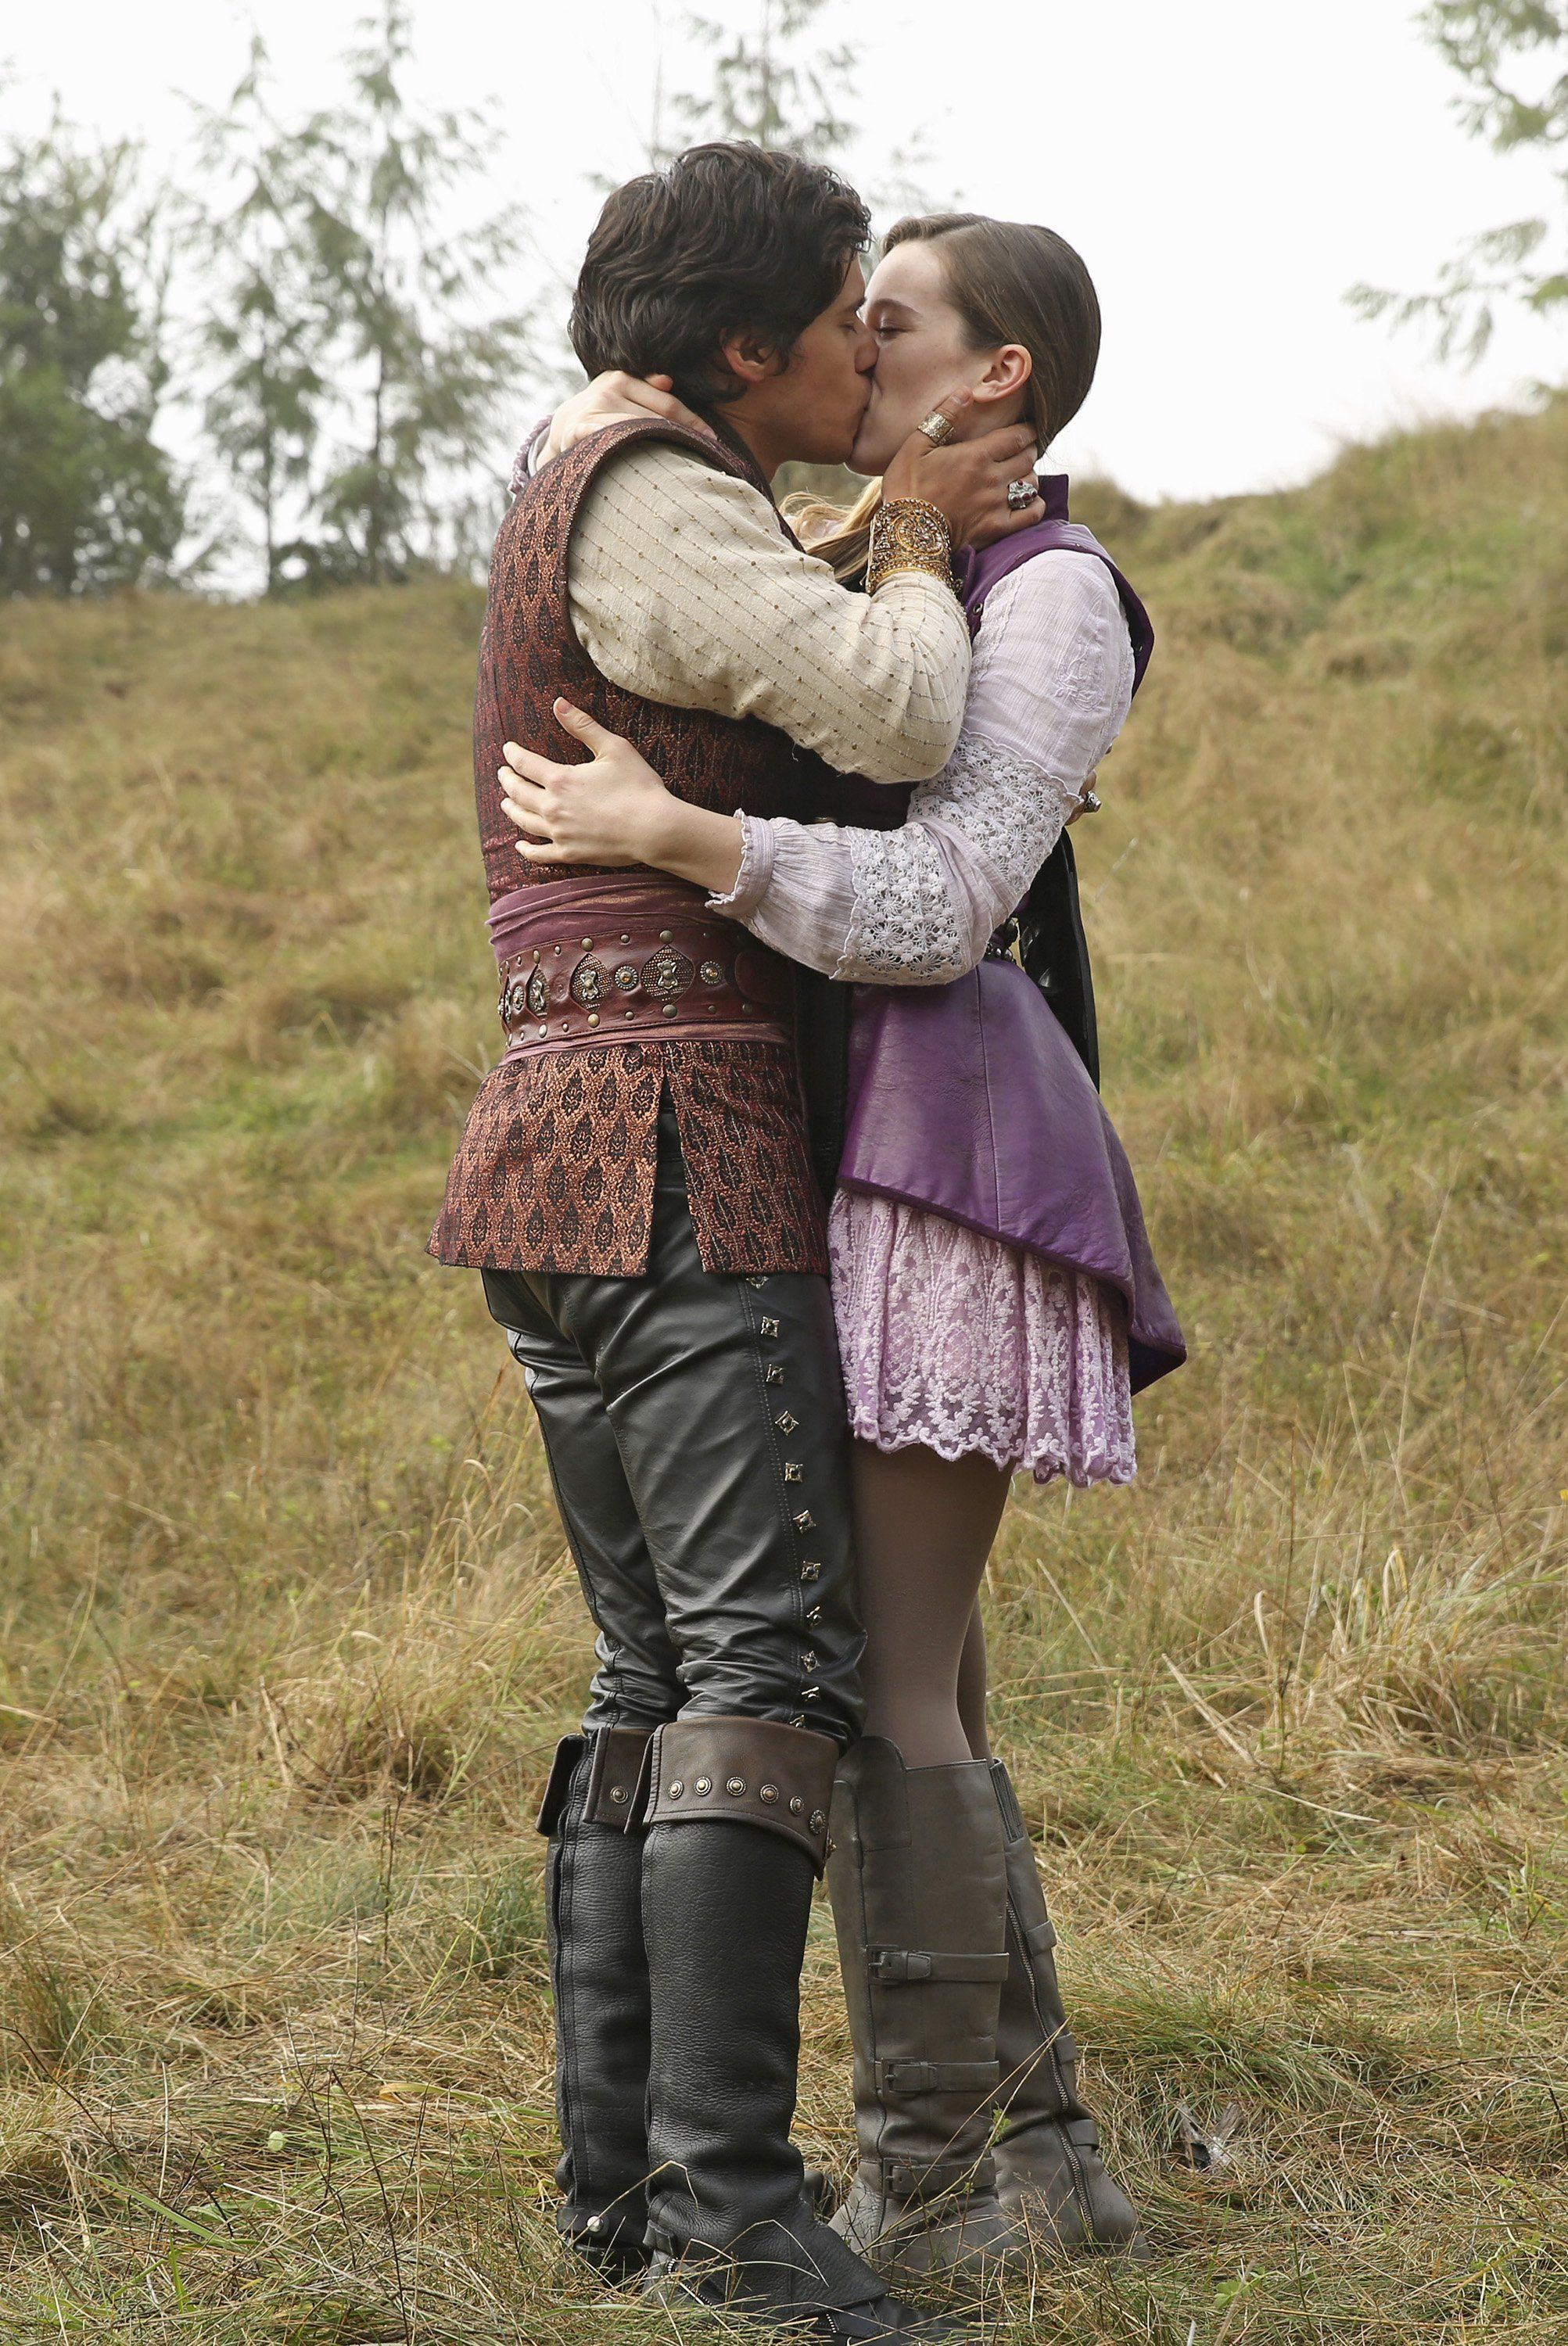 OUAT in Wonderland - Alice and Cyrus